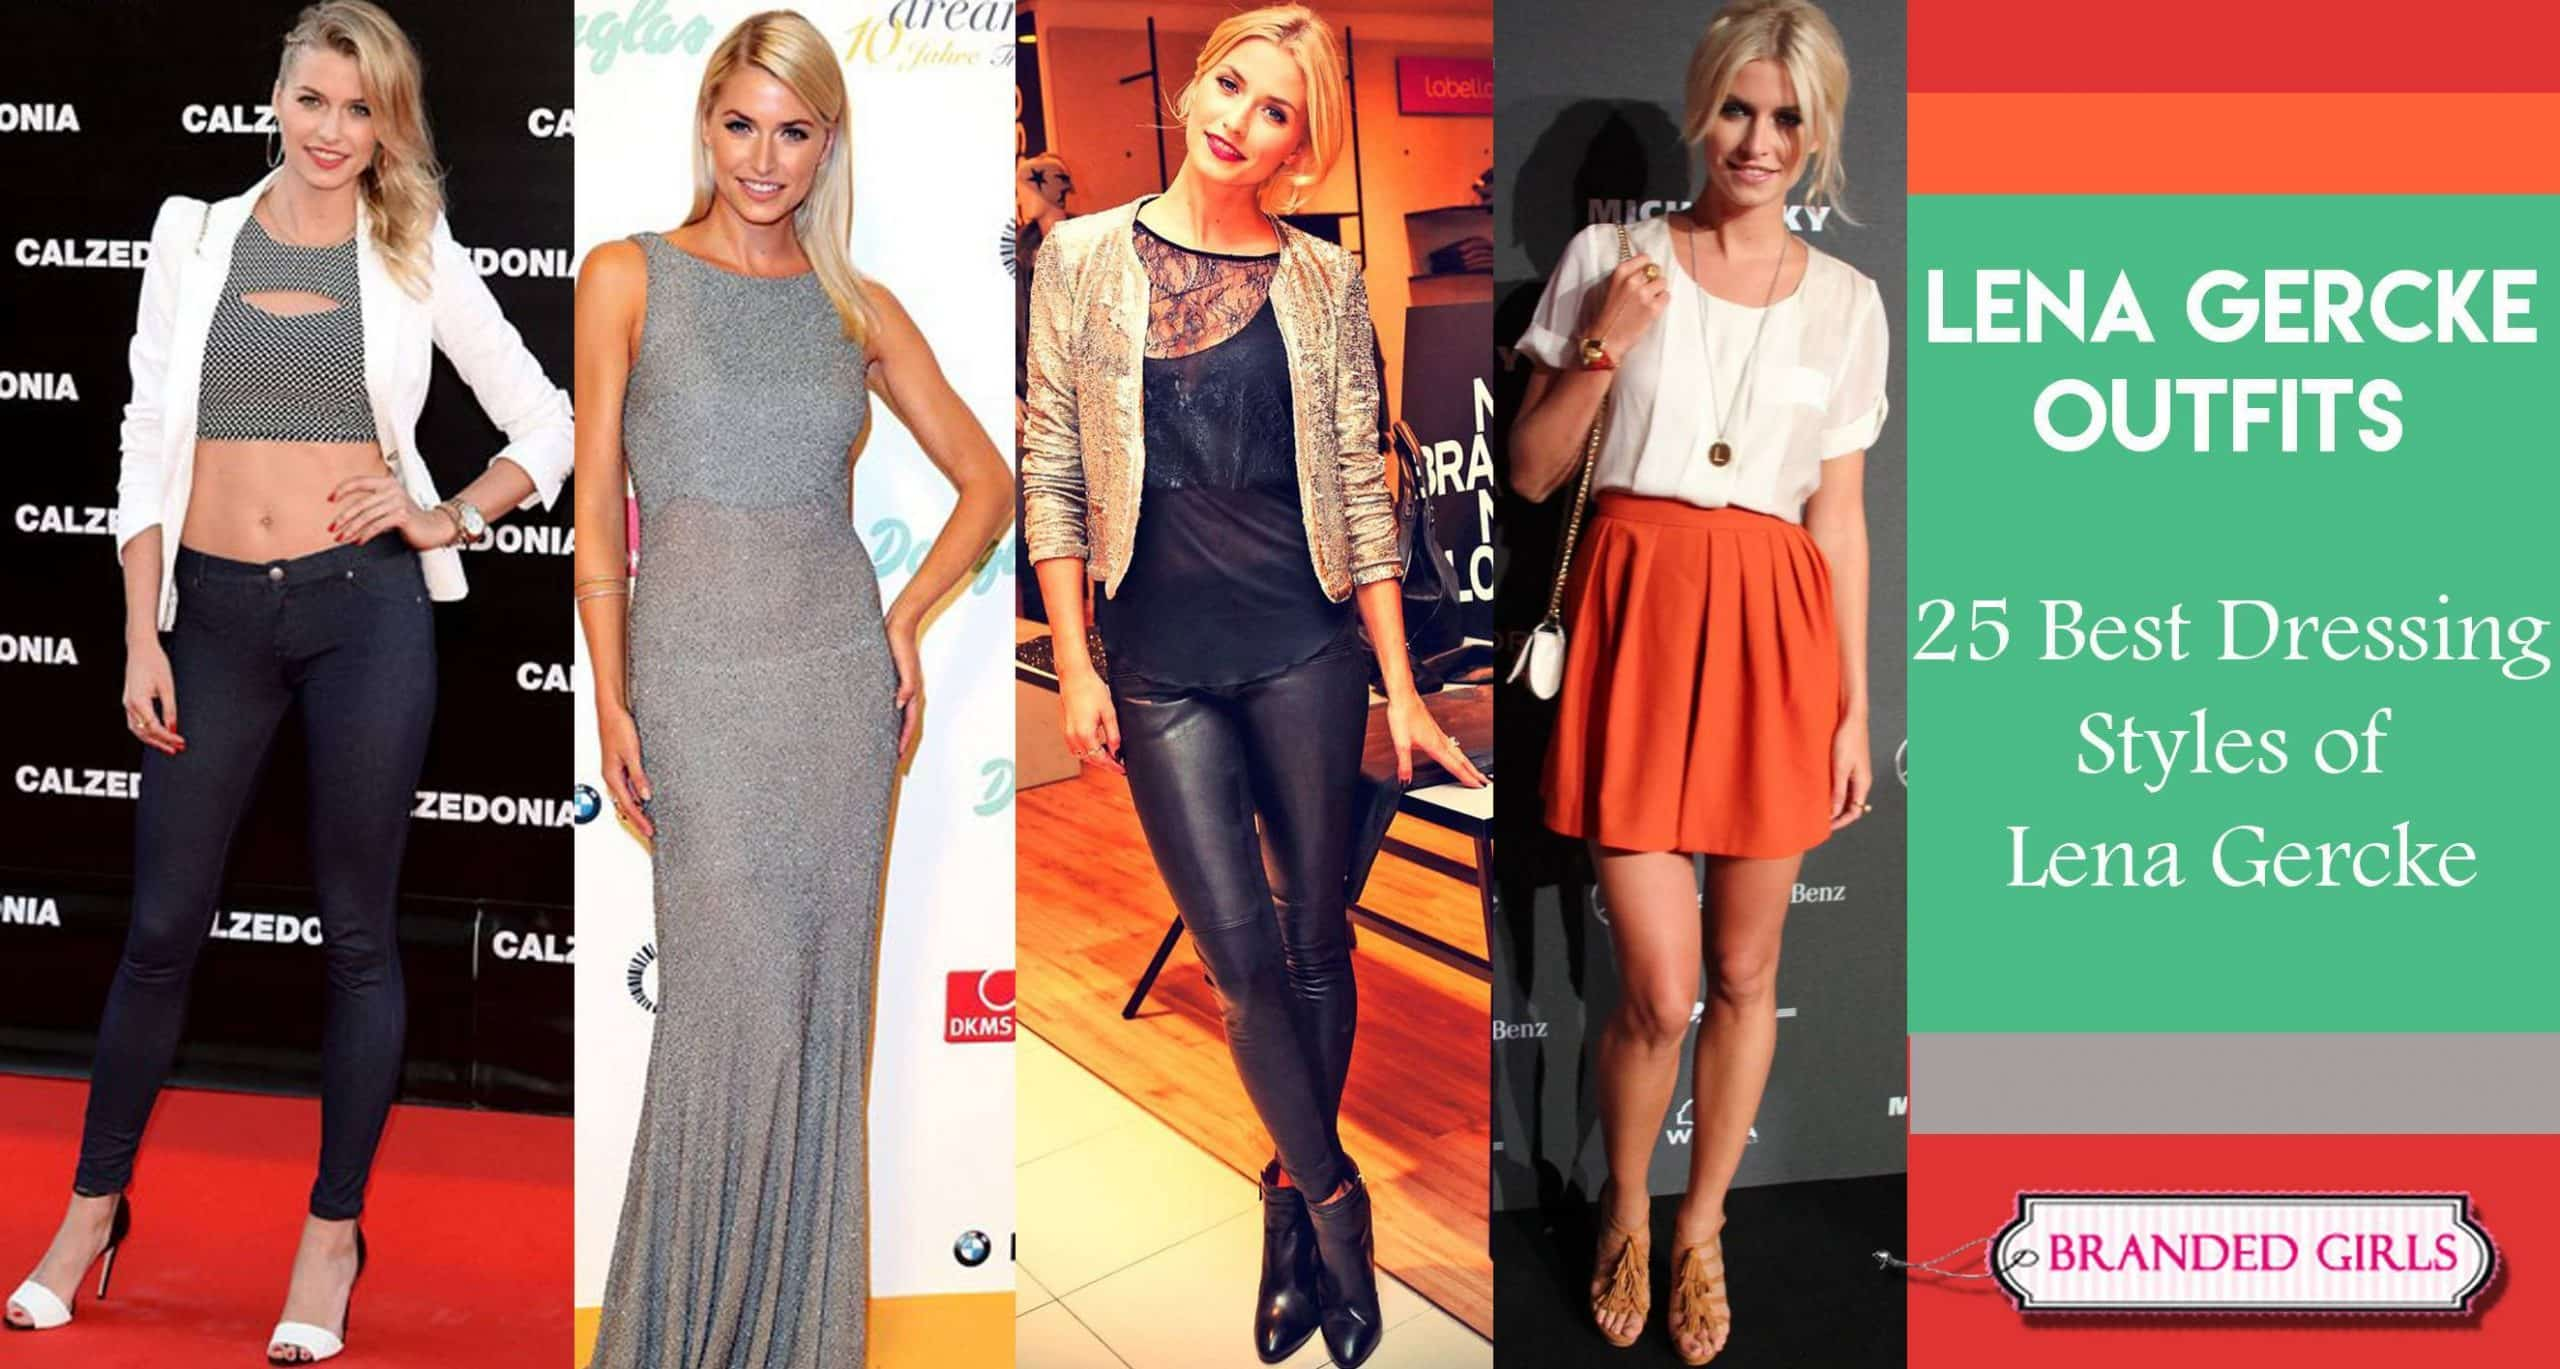 lena-gercke-outfits Lena Gercke Outfits-25 Best Dressing Style of Lena Gercke to Copy